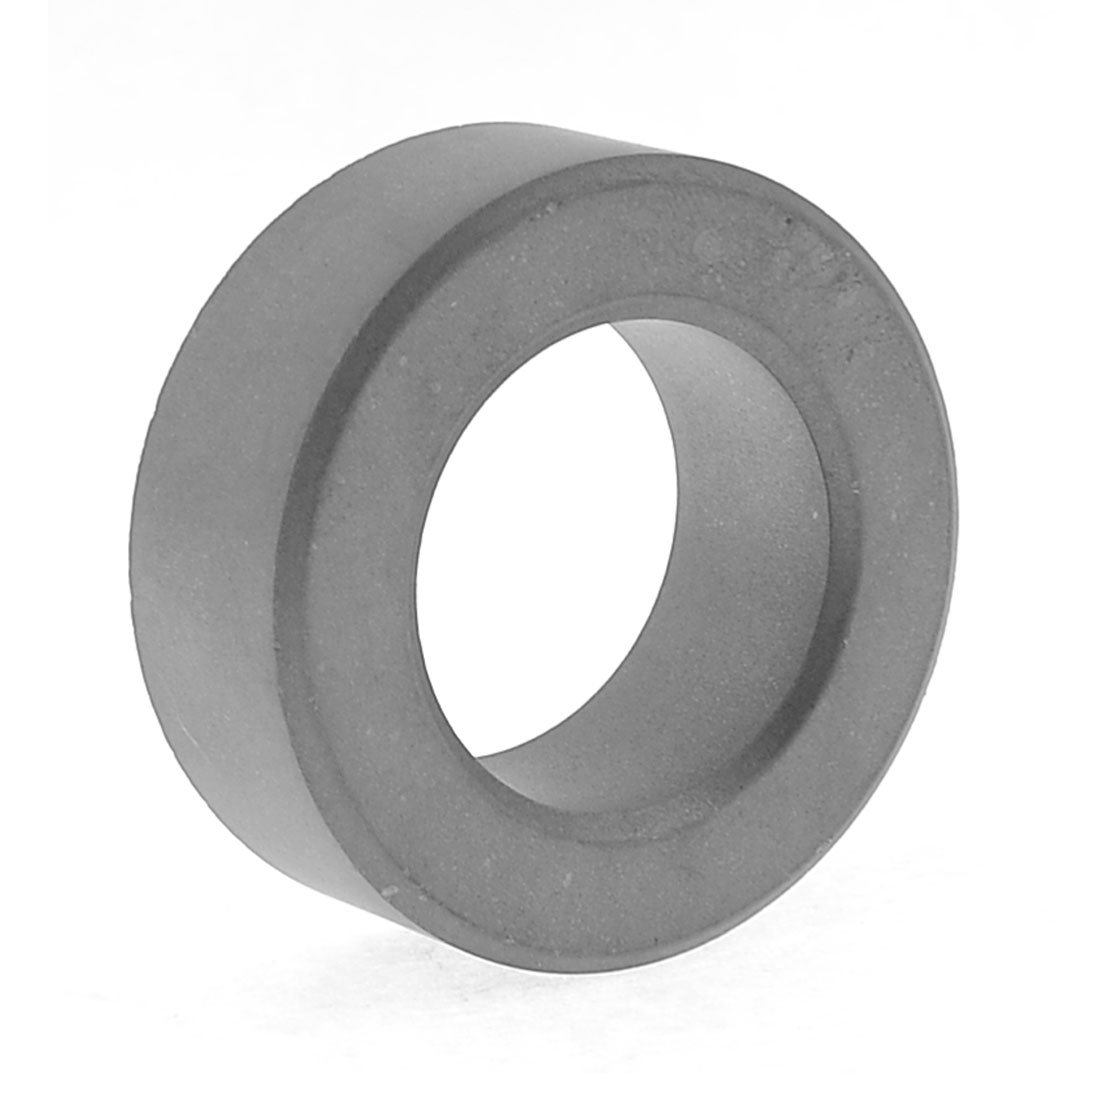 Uxcell a13110600ux0581 50 x 30 x 19 mm Ferrite Ring Iron Toroid Core Black for Power Inductor, 1.18' Width, 1.97' Length 1.18 Width 1.97 Length